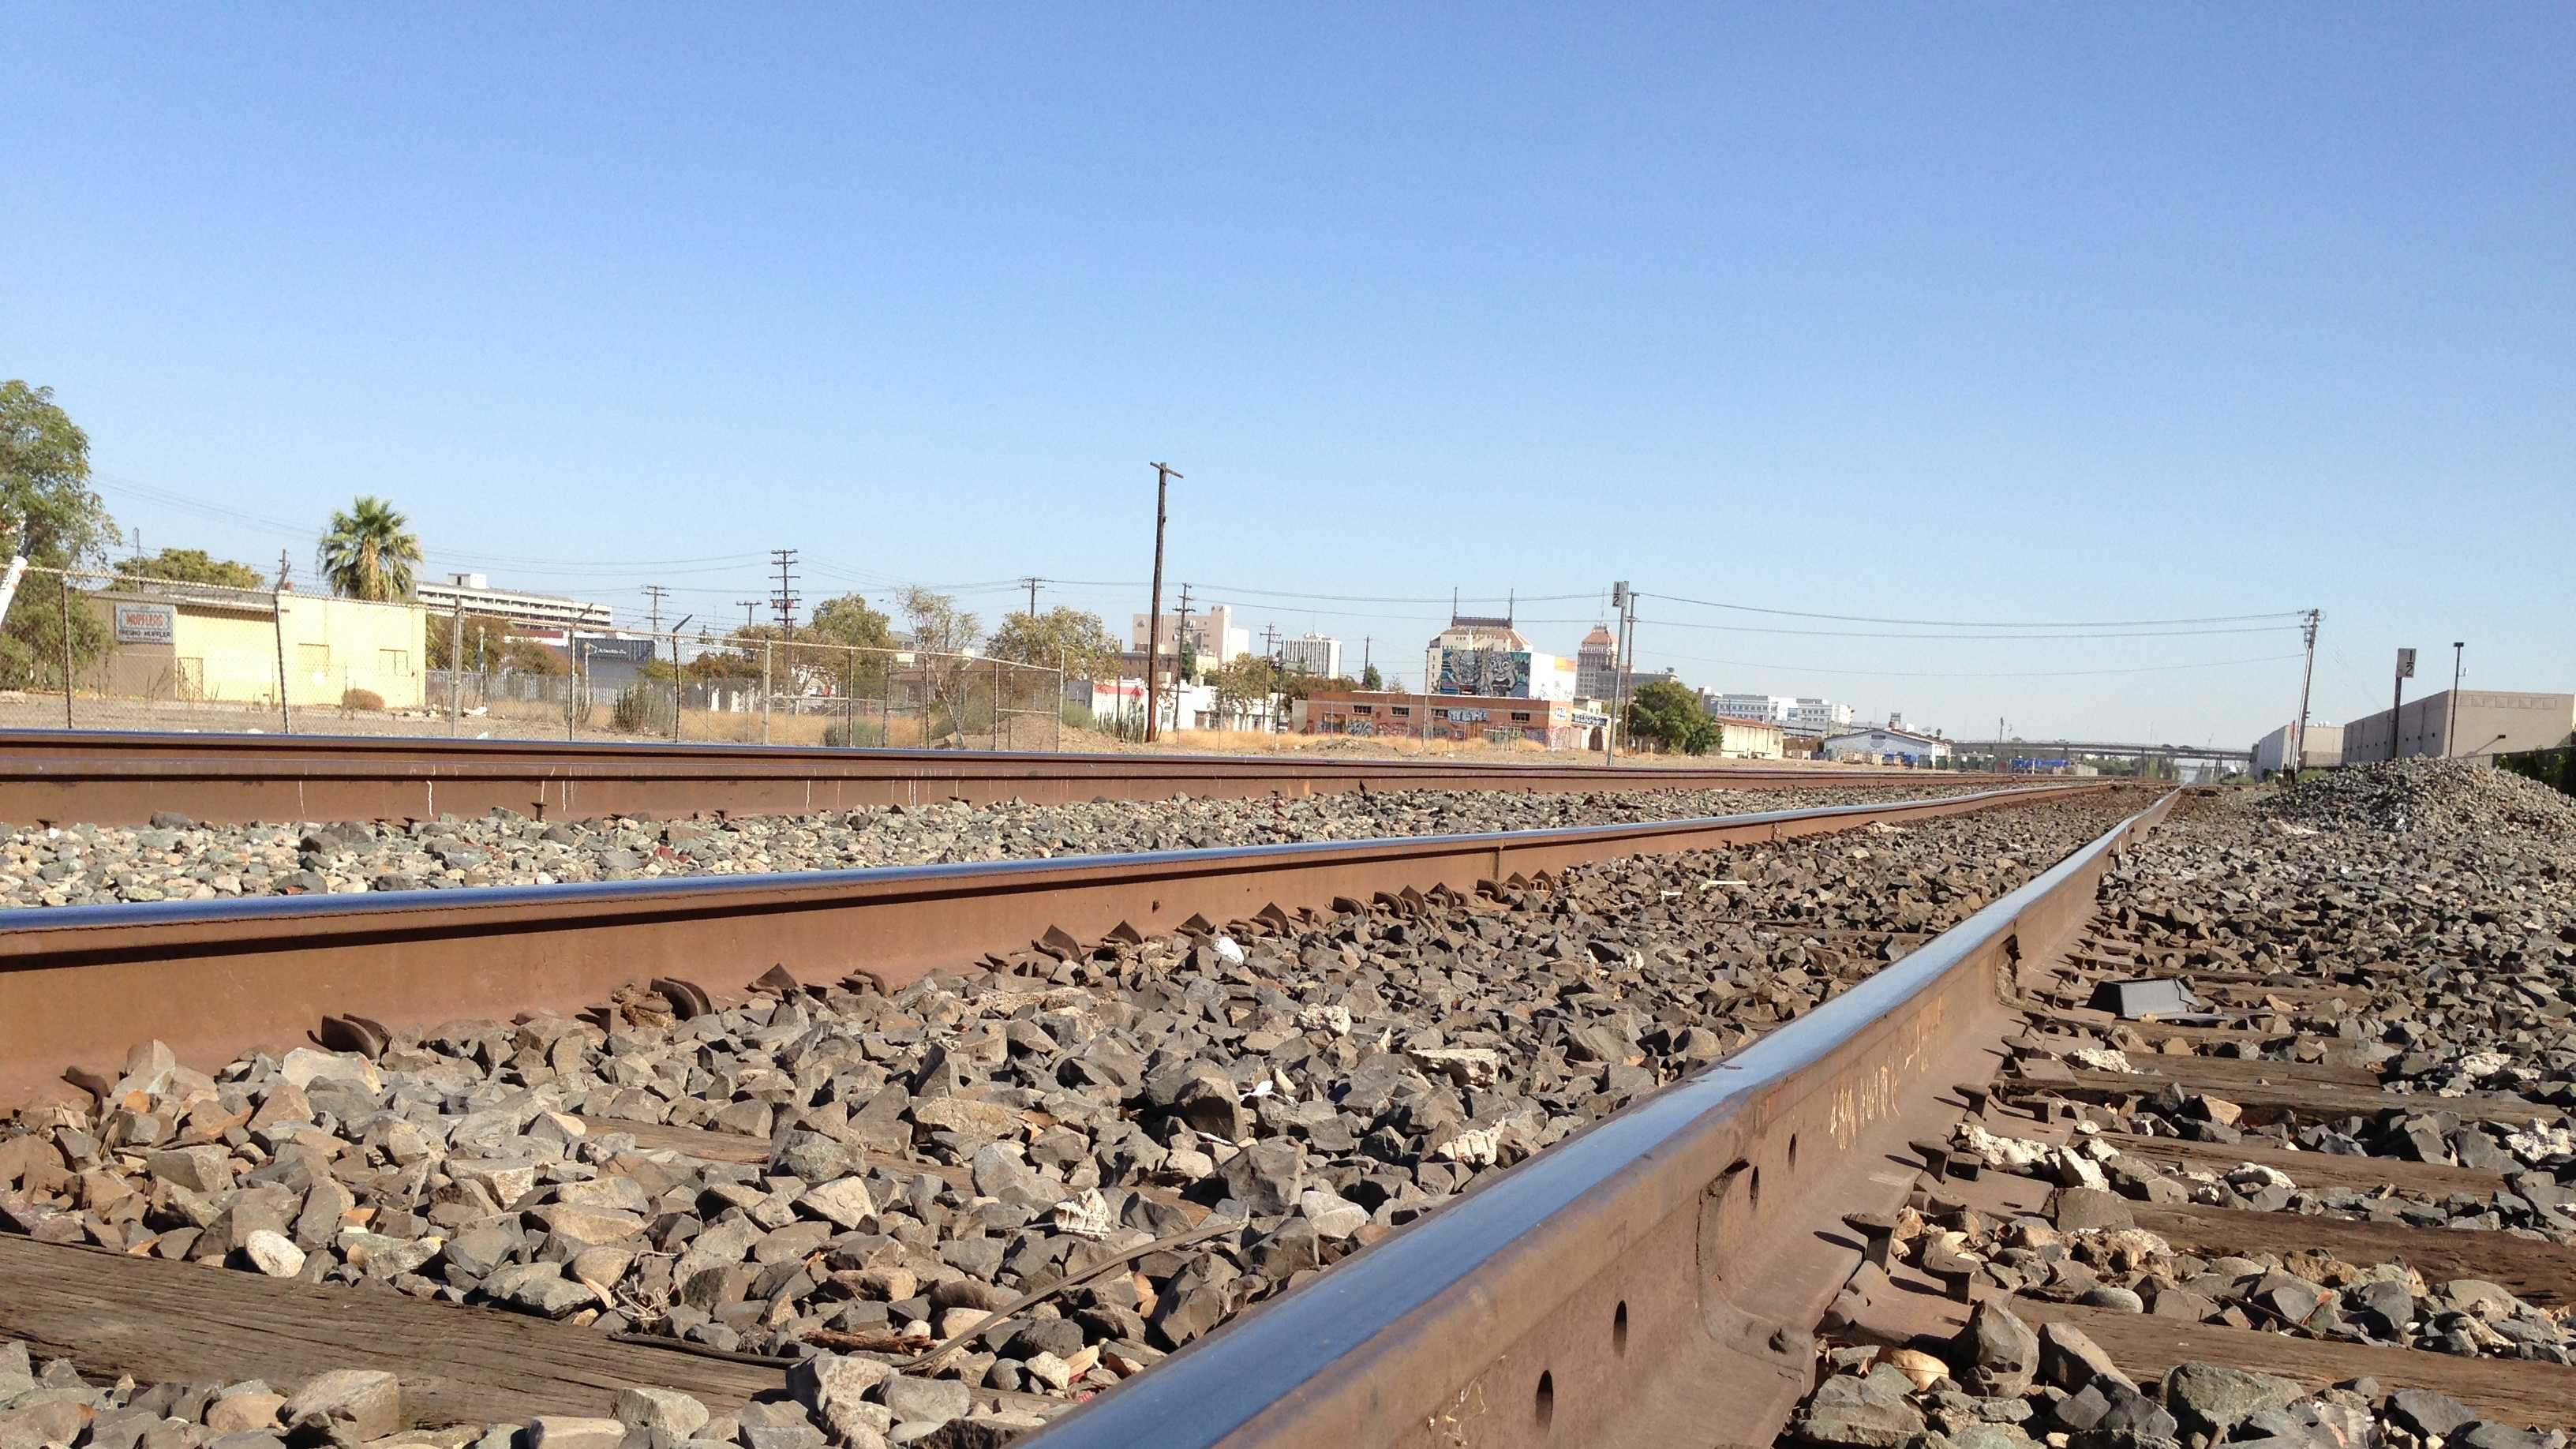 The high-speed rail line will parallel these freight train tracks in downtown Fresno.